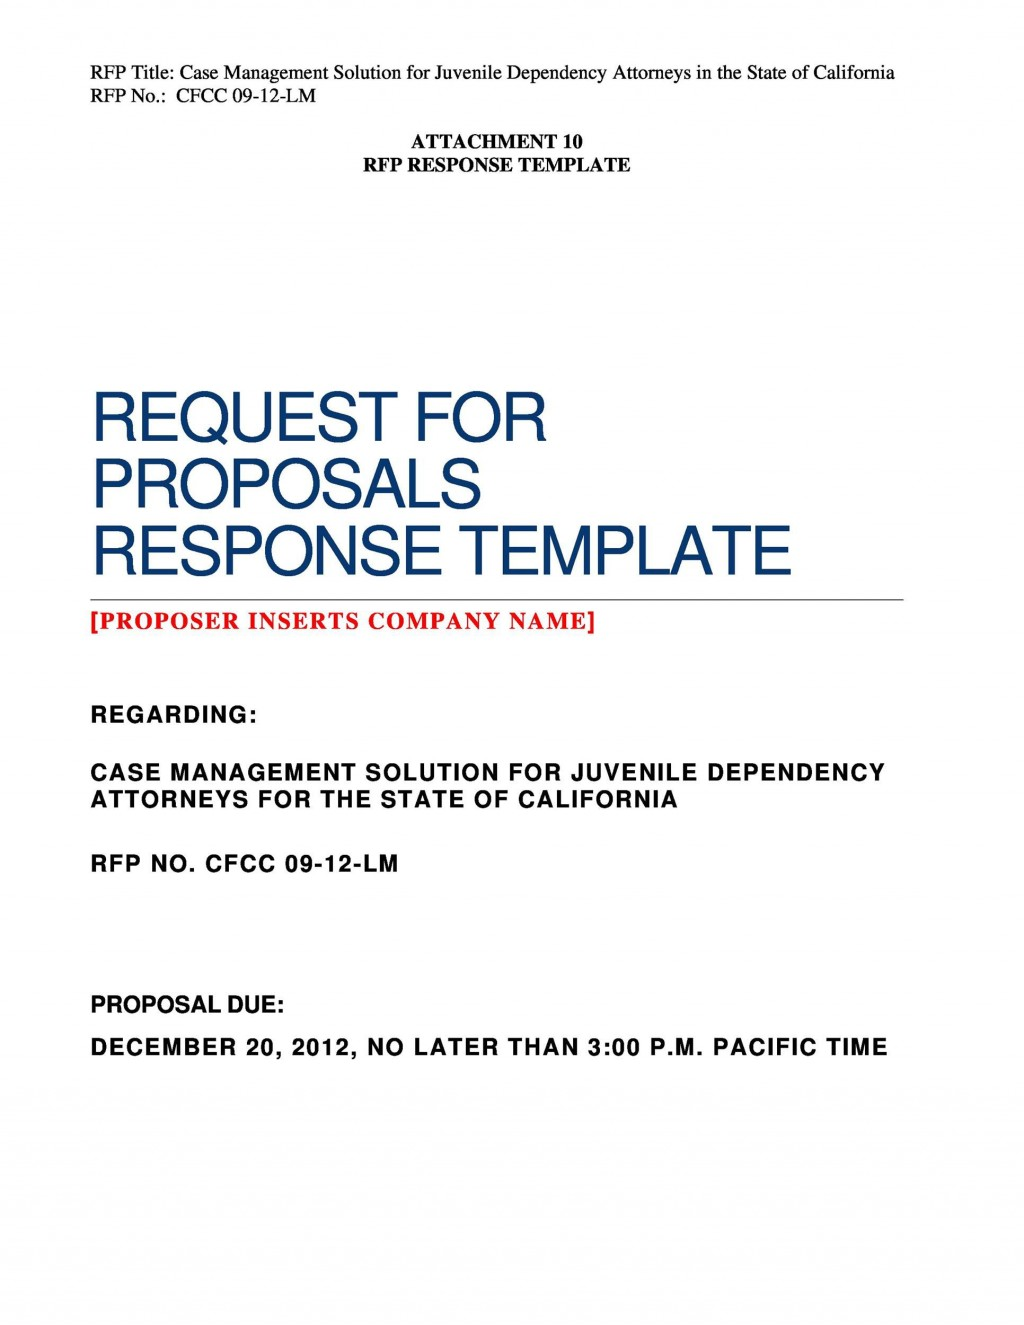 008 Stupendou Request For Proposal Response Template Free High Resolution Large